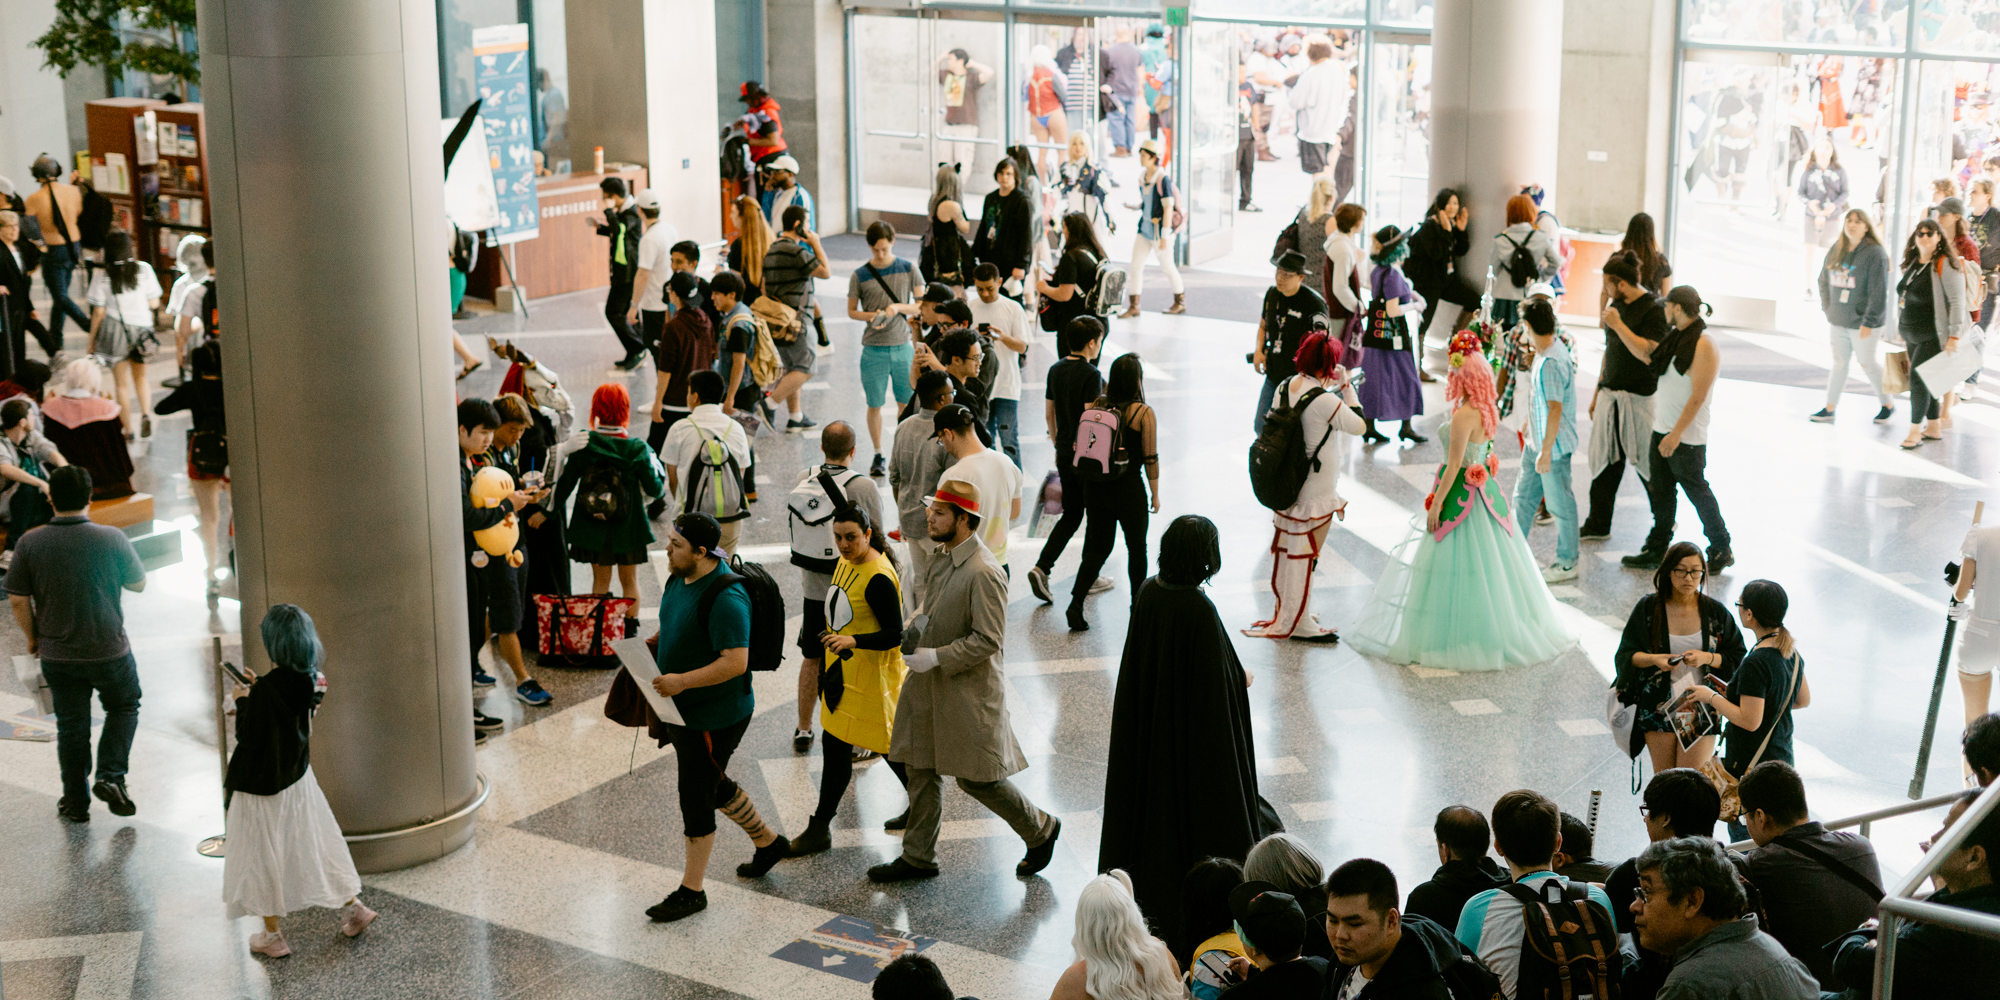 WELCOME TO FANIME -